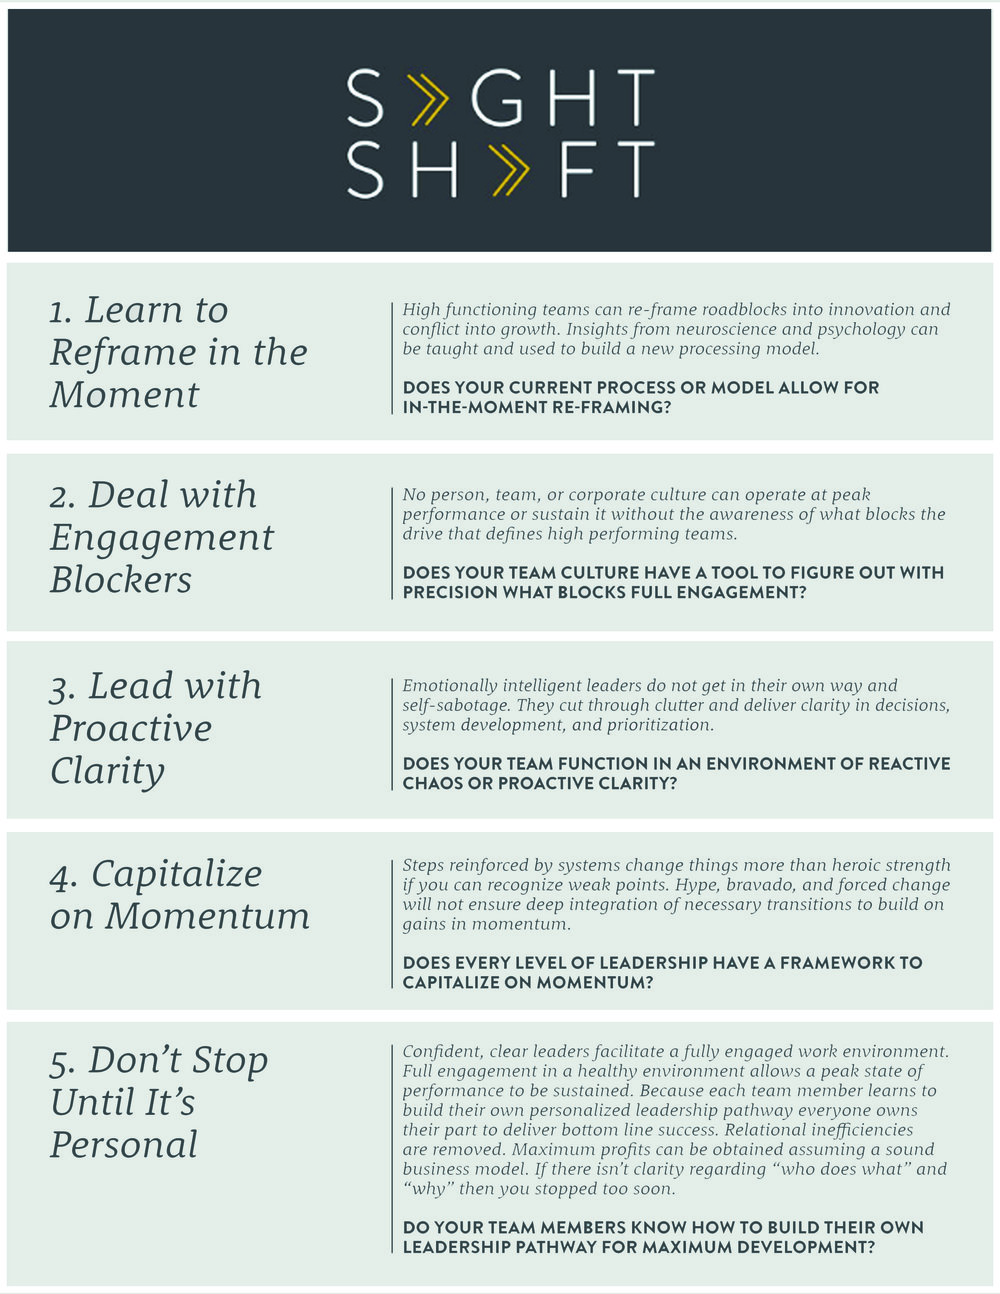 SightShift-ShortForm Team Guide_allgrey (1) (1).jpg